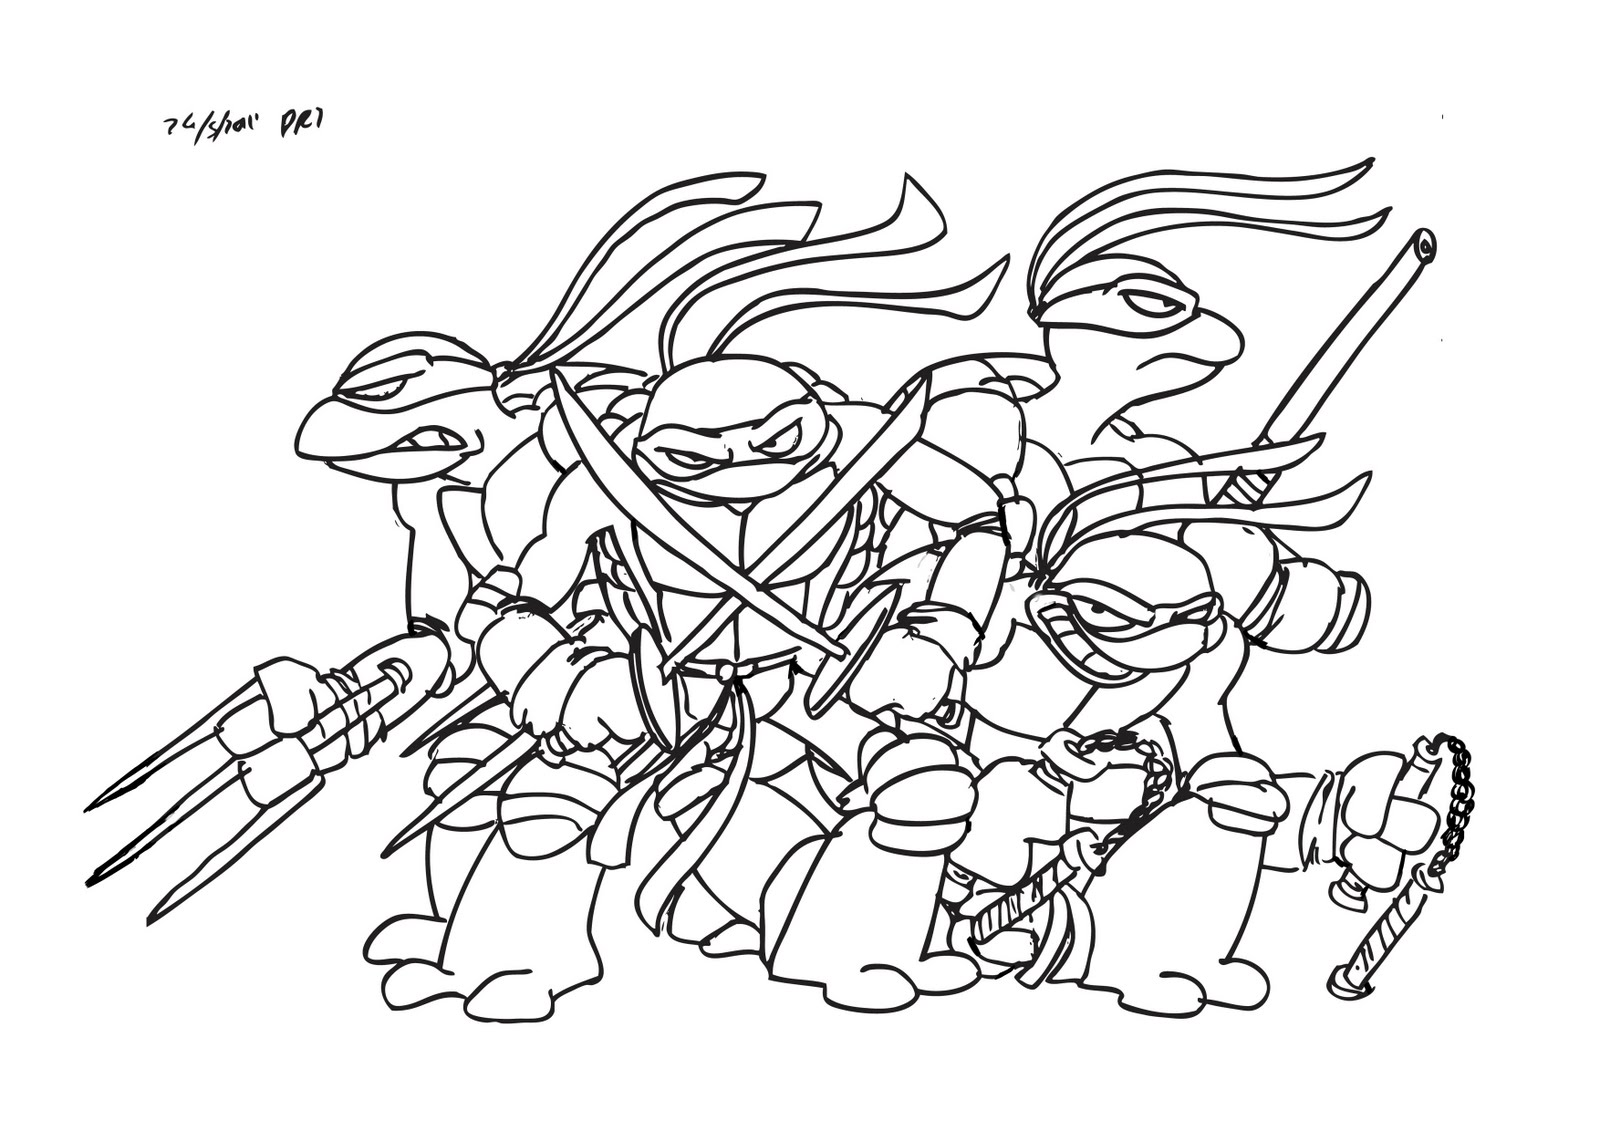 Ninja turtles pages to color - Teenage Mutant Ninja Turtles Coloring Pages